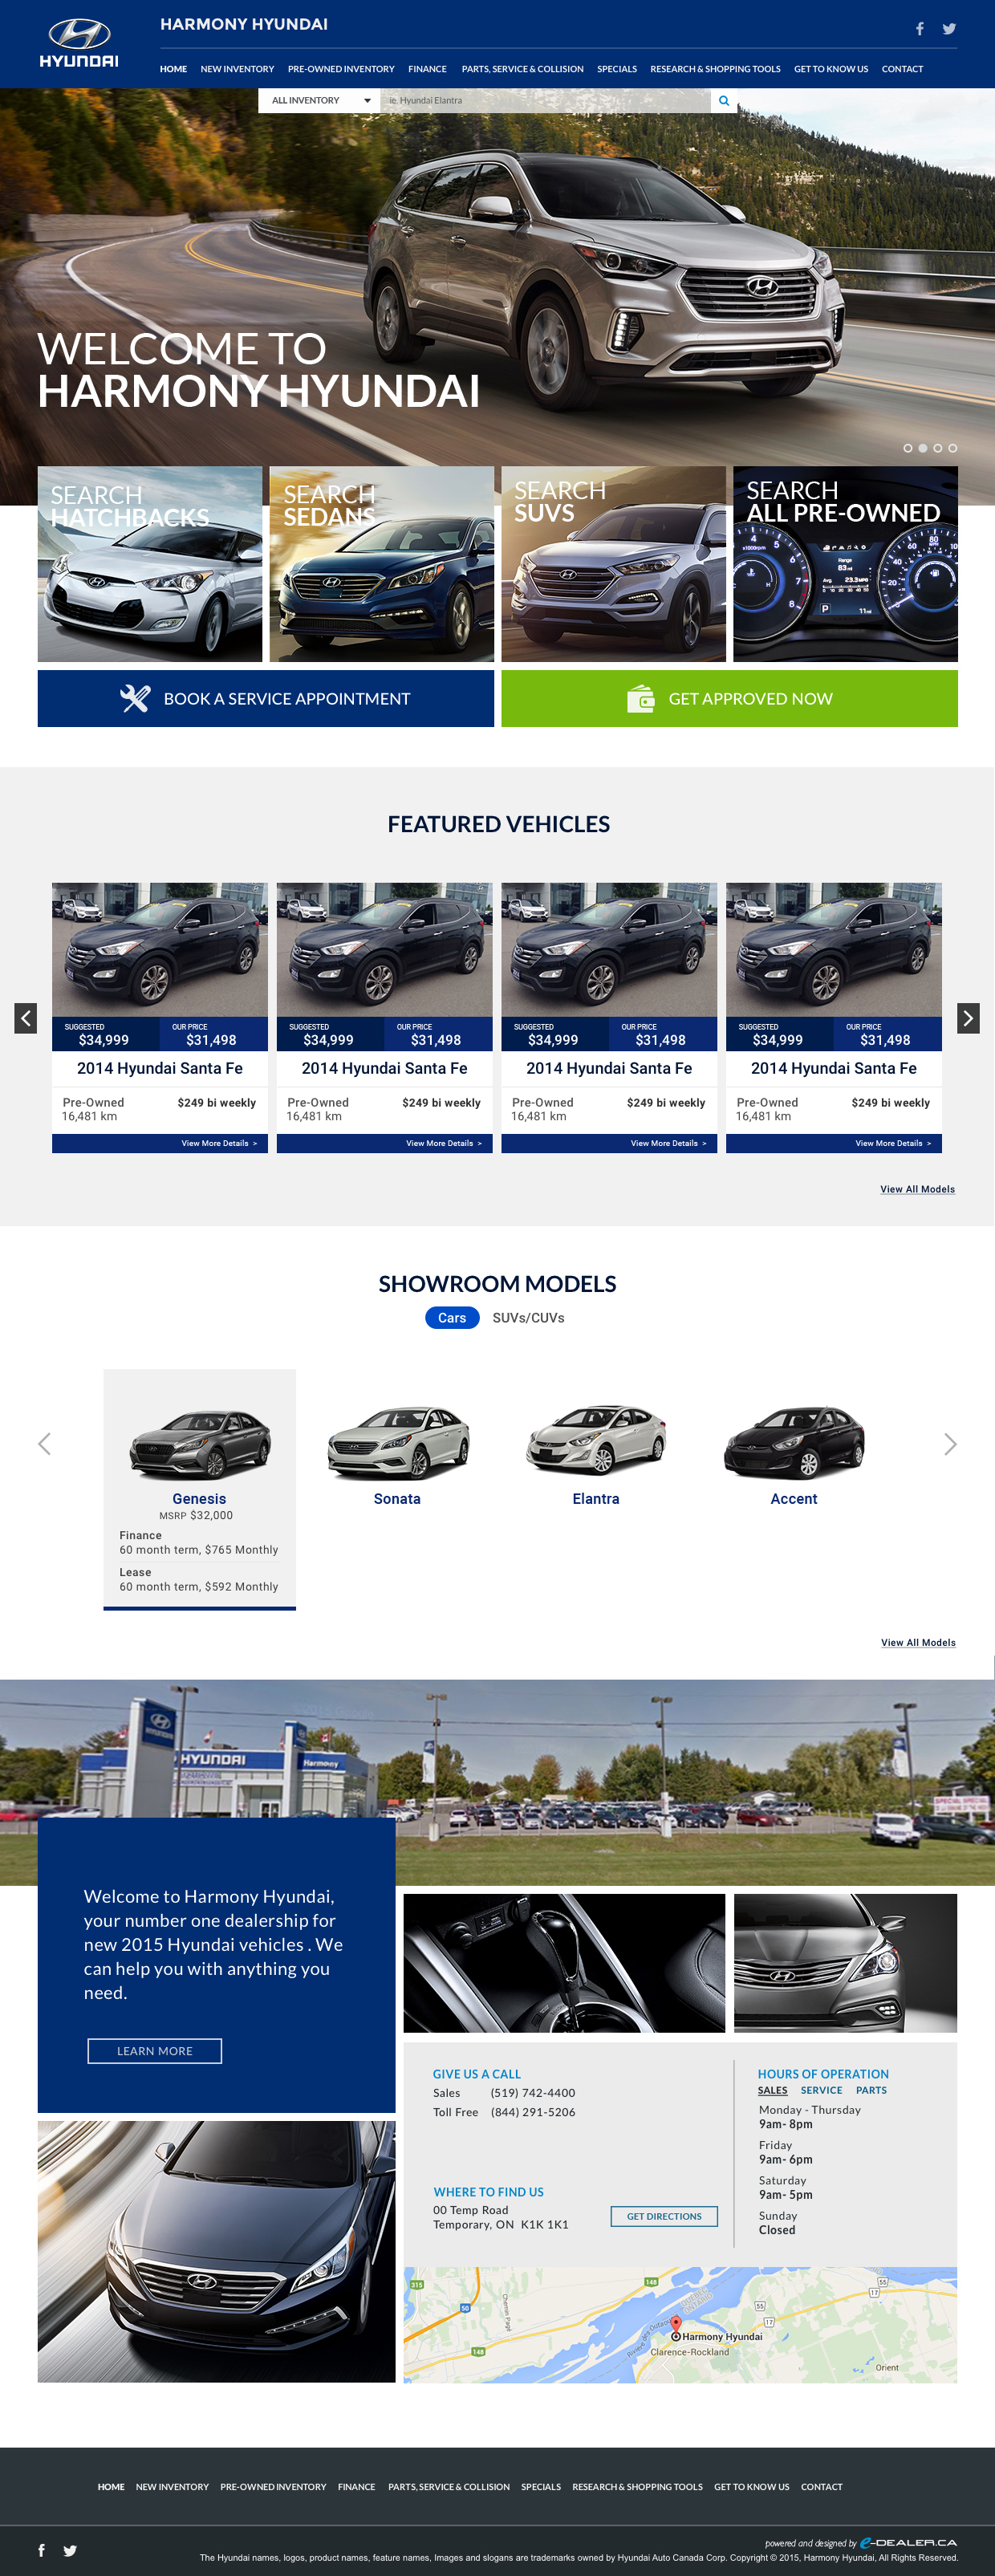 HarmonyHyundai-Desktop-Final